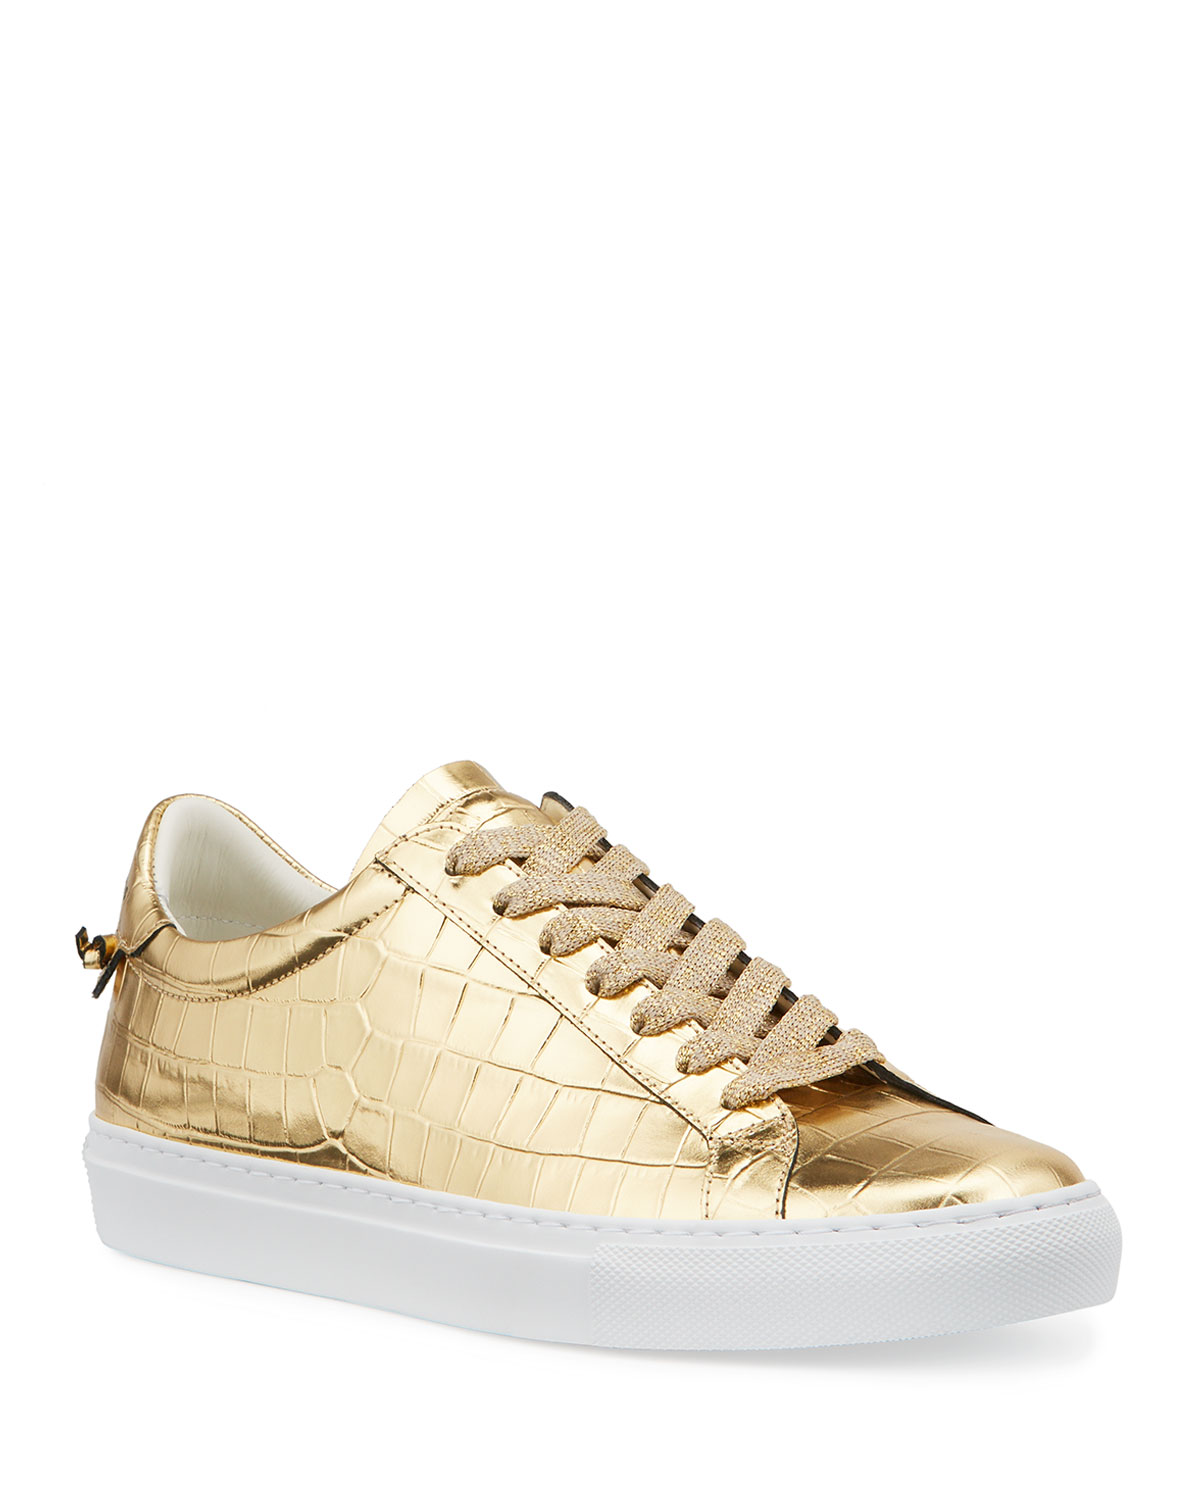 Givenchy Leathers URBAN STREET METALLIC MOC-CROC LOW-TOP SNEAKERS